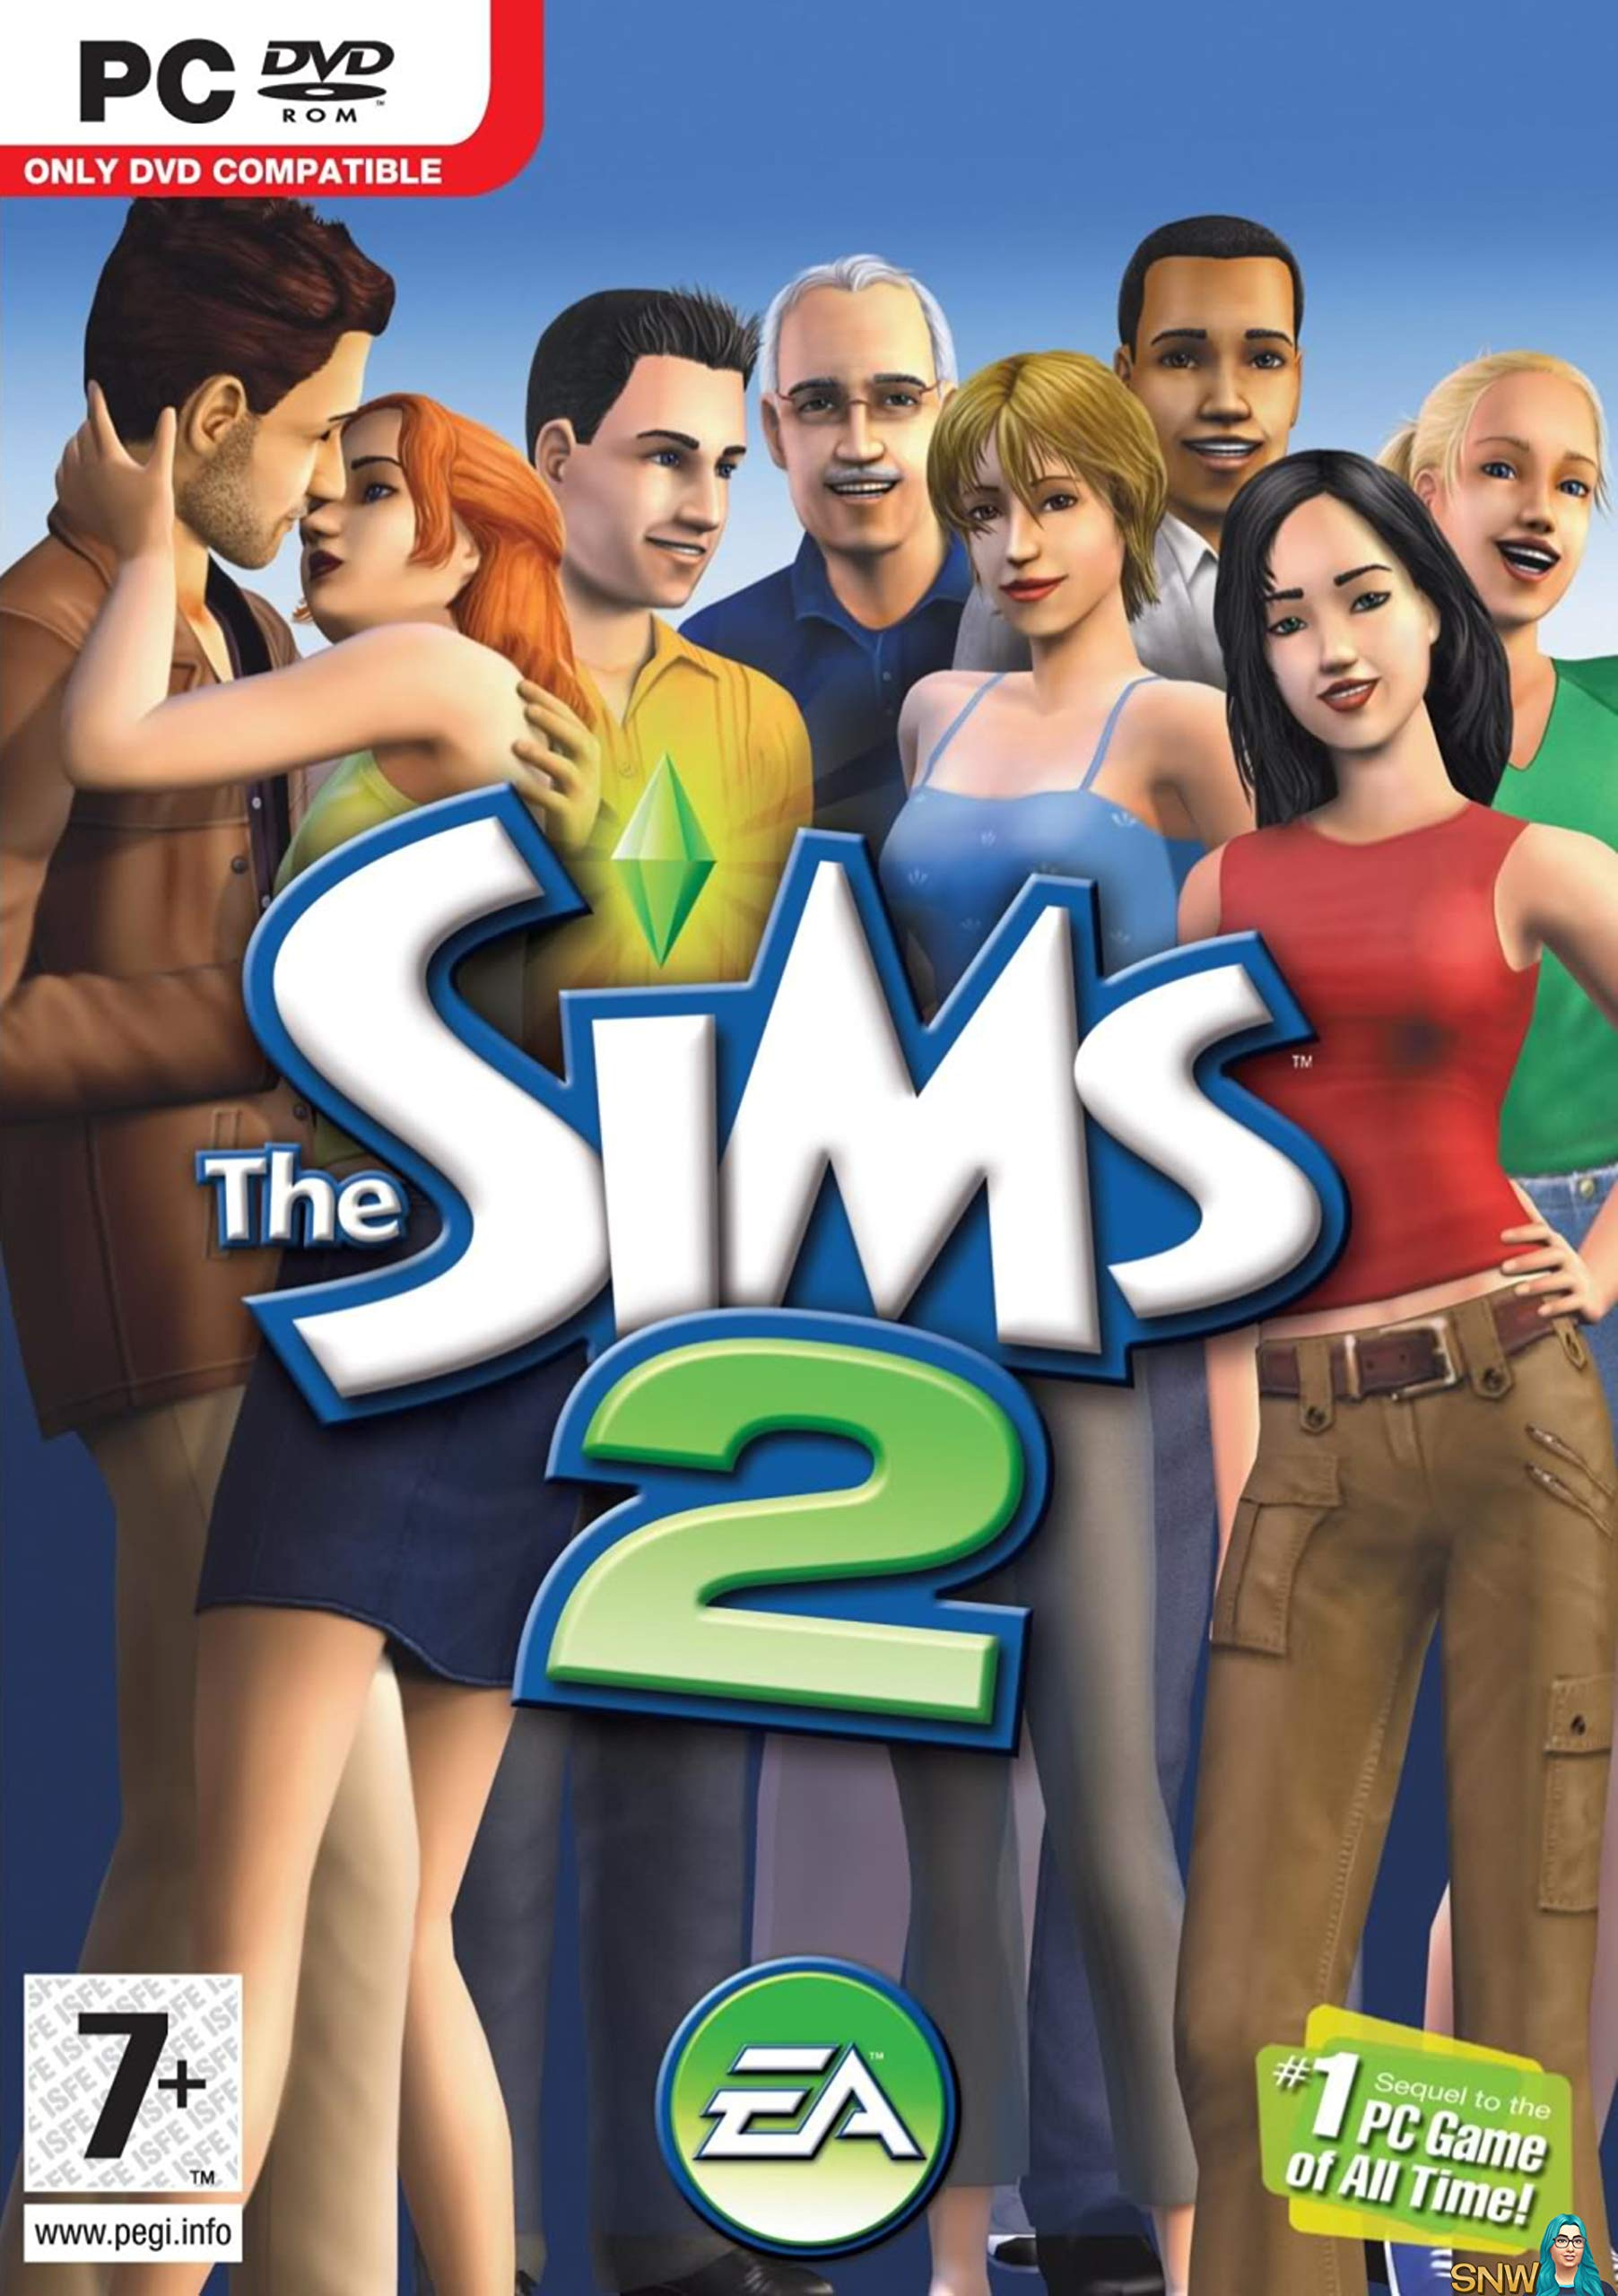 The Sims 2 (PC DVD)